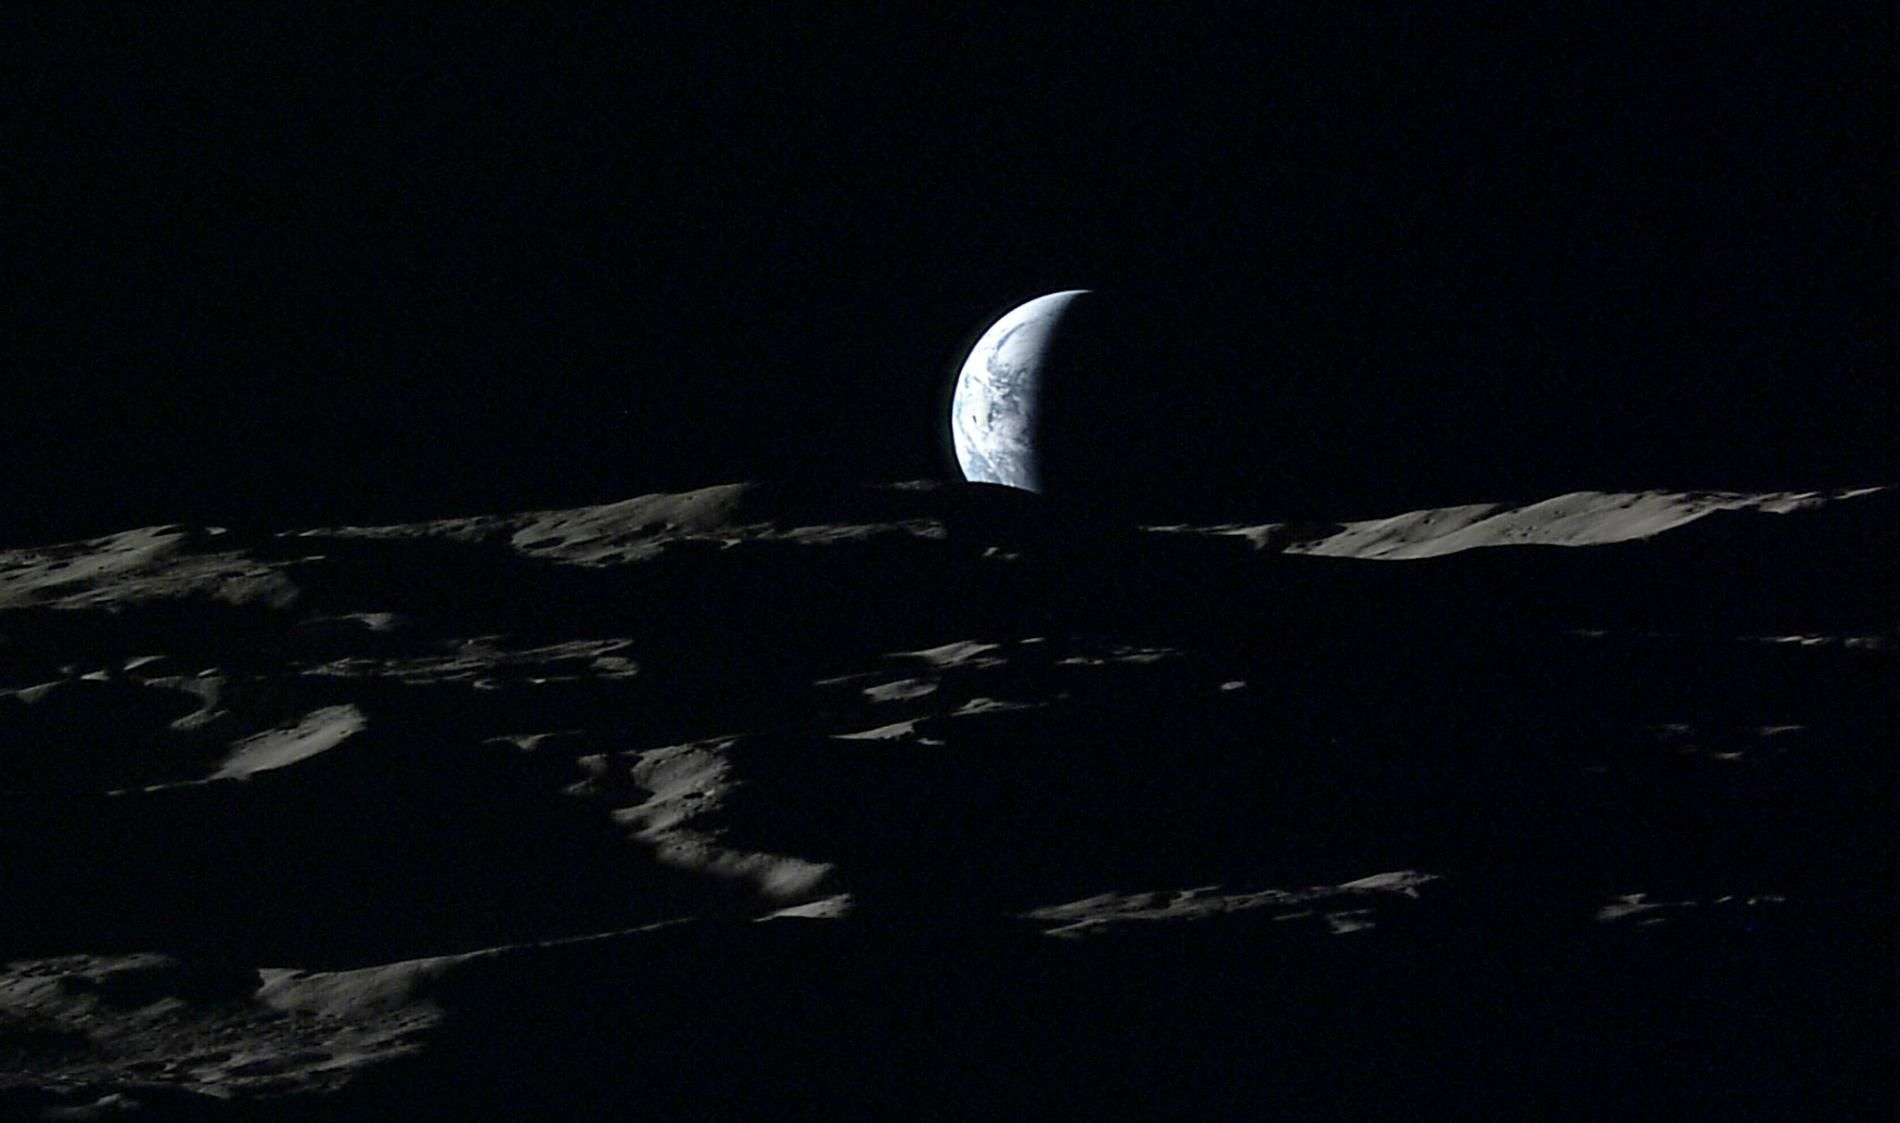 Haunting Pictures Show Earth Rising Over the Moon #photography #photo http://news.nationalgeographic.com/2016/10/moon-earth-pictures-japan-kaguya-hdtv-space-science/